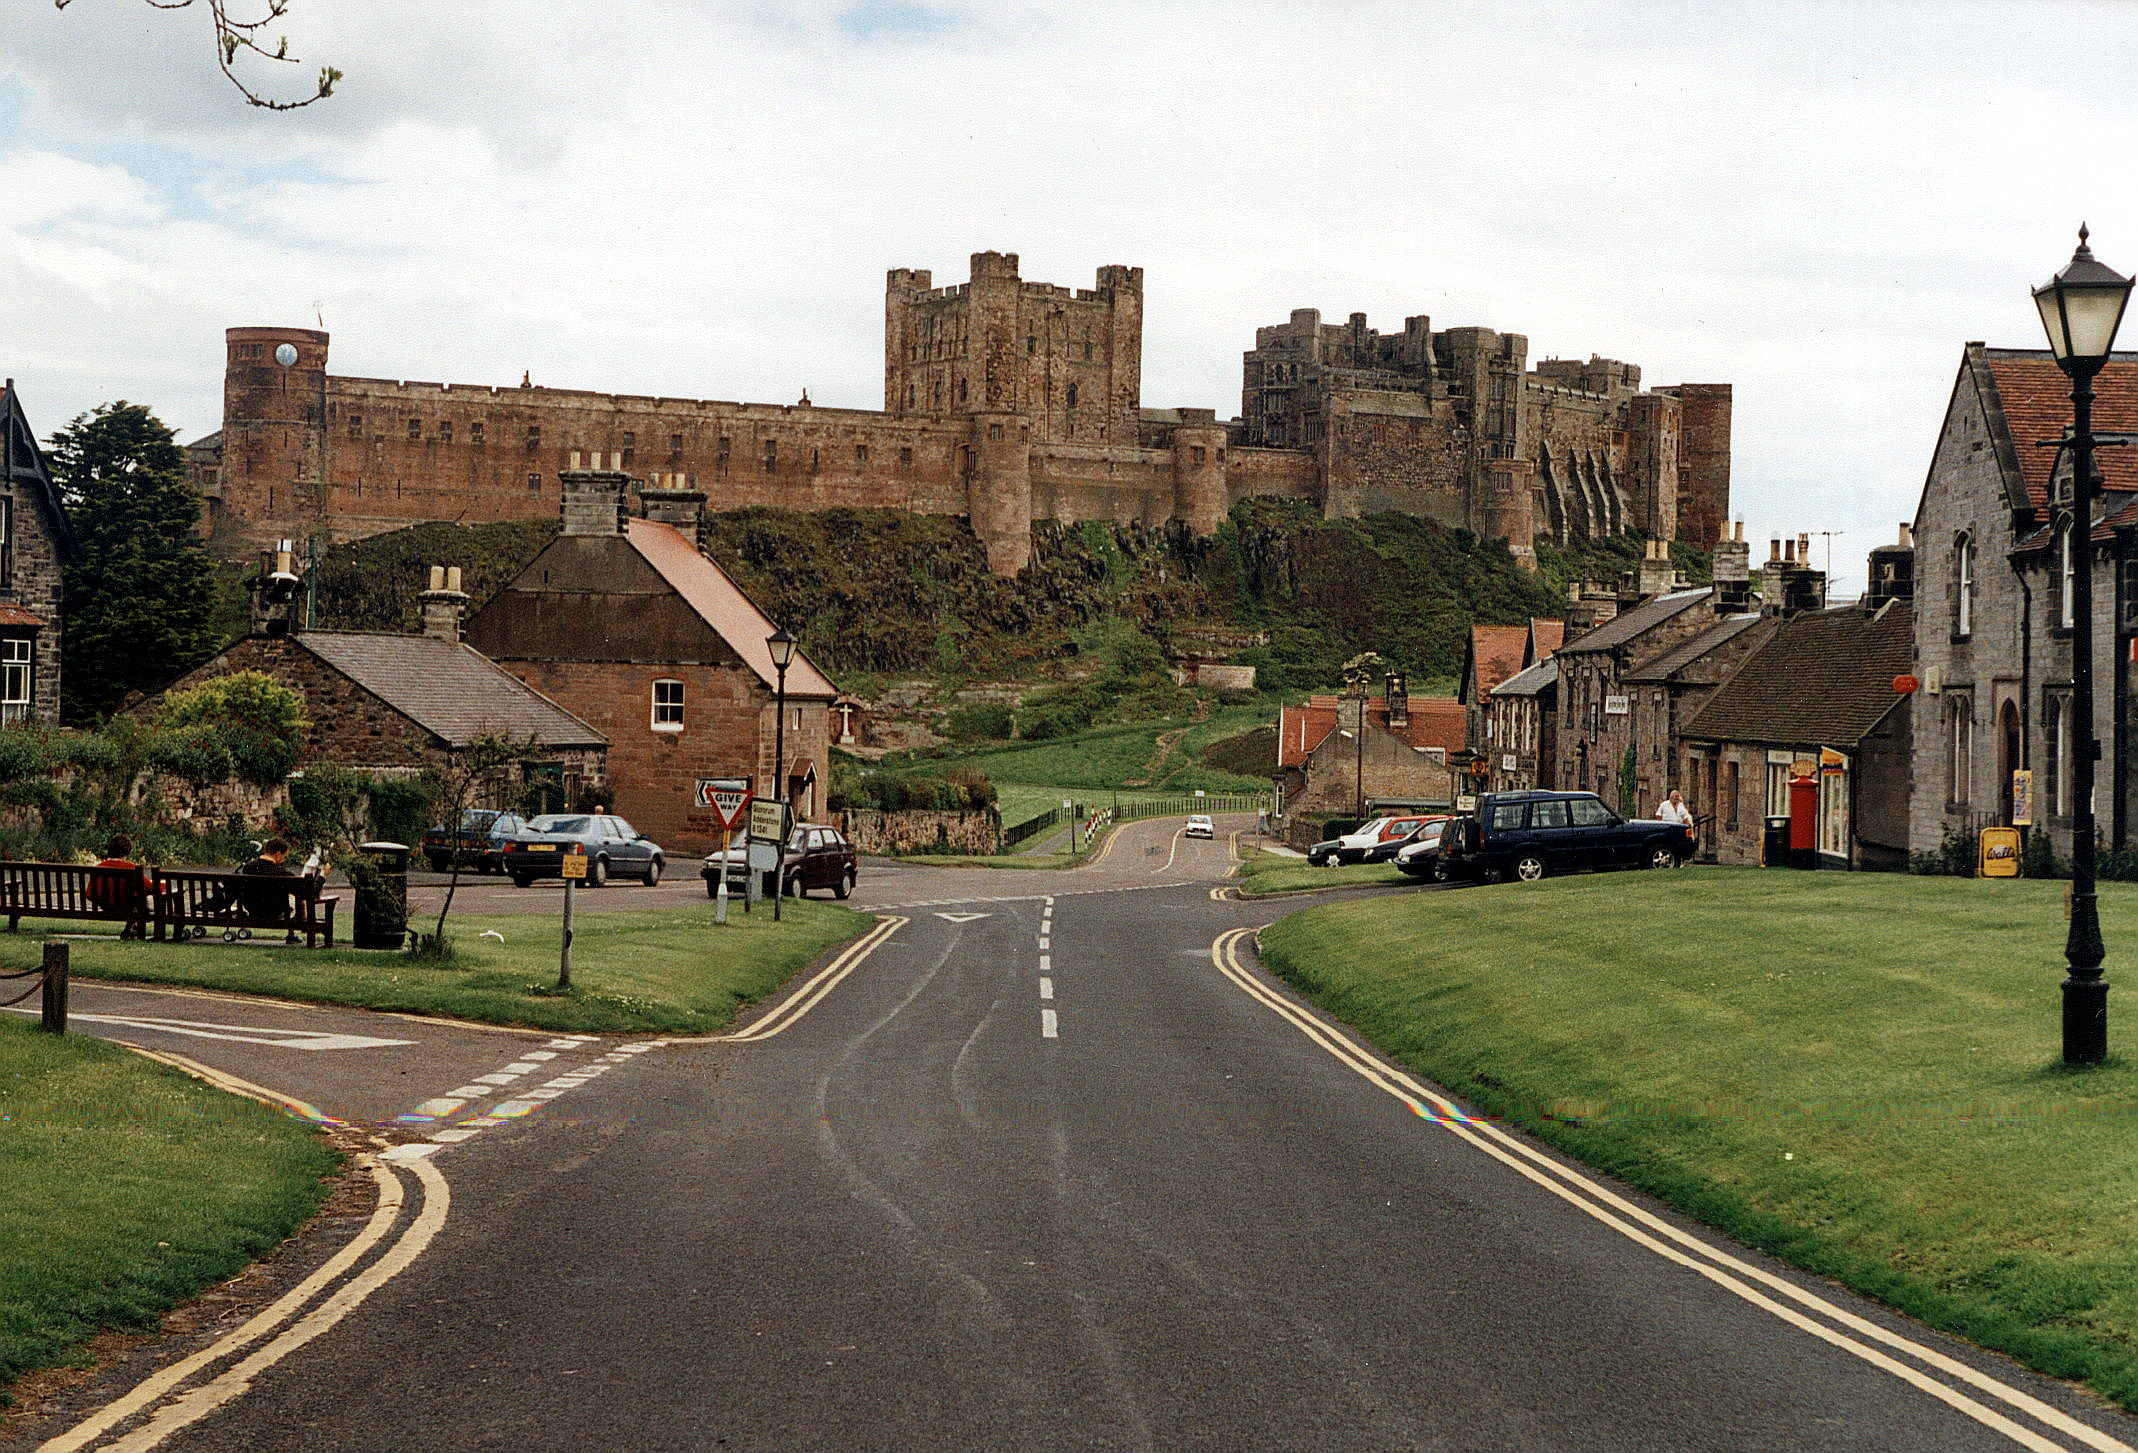 bamburgh castle - photo #33